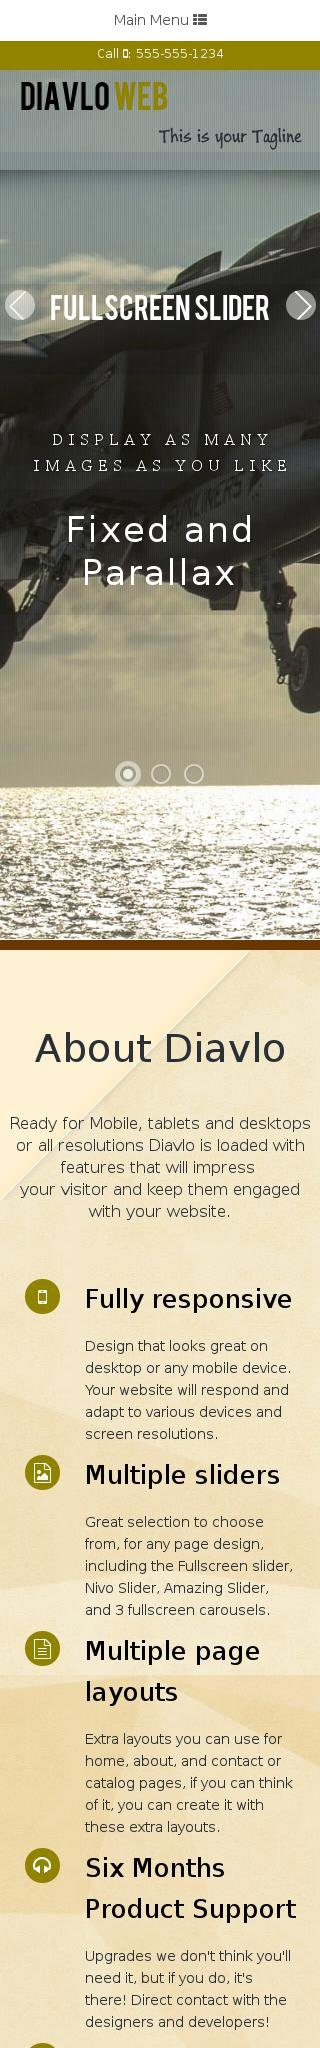 Mobile: Aviation Web Template